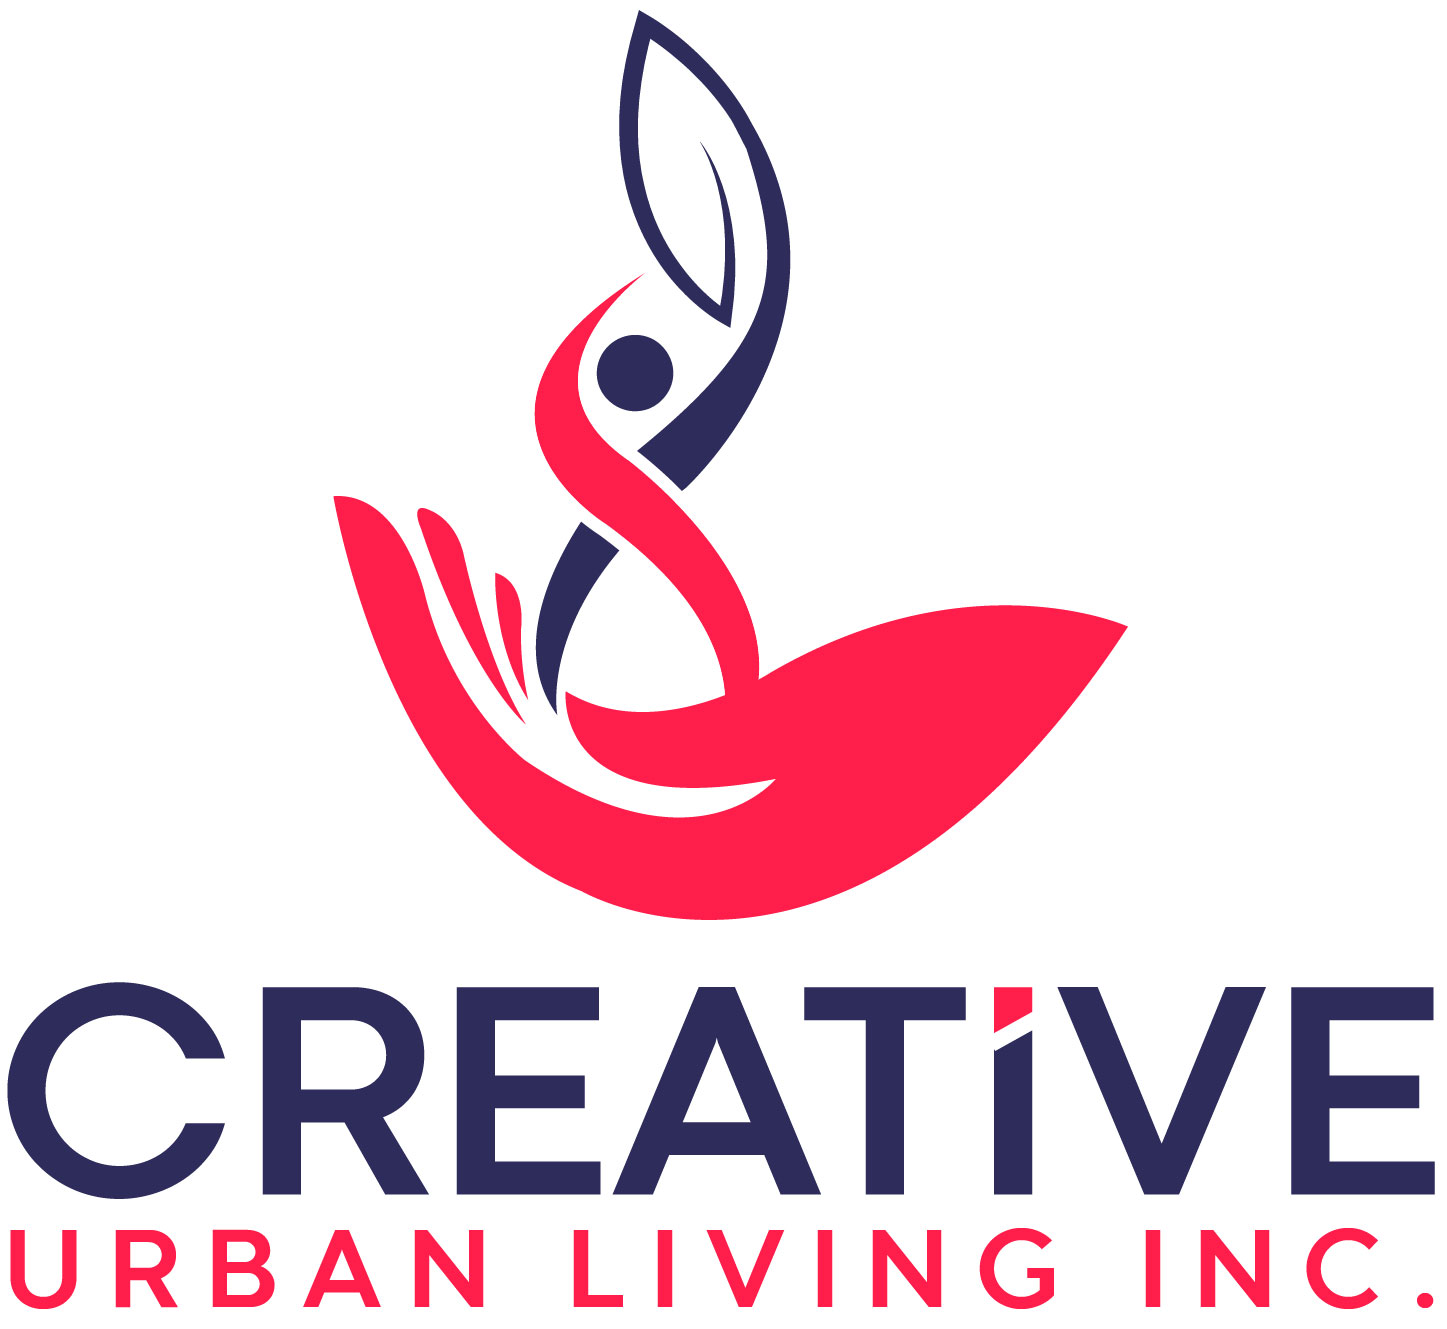 Creative Urban Living Inc.